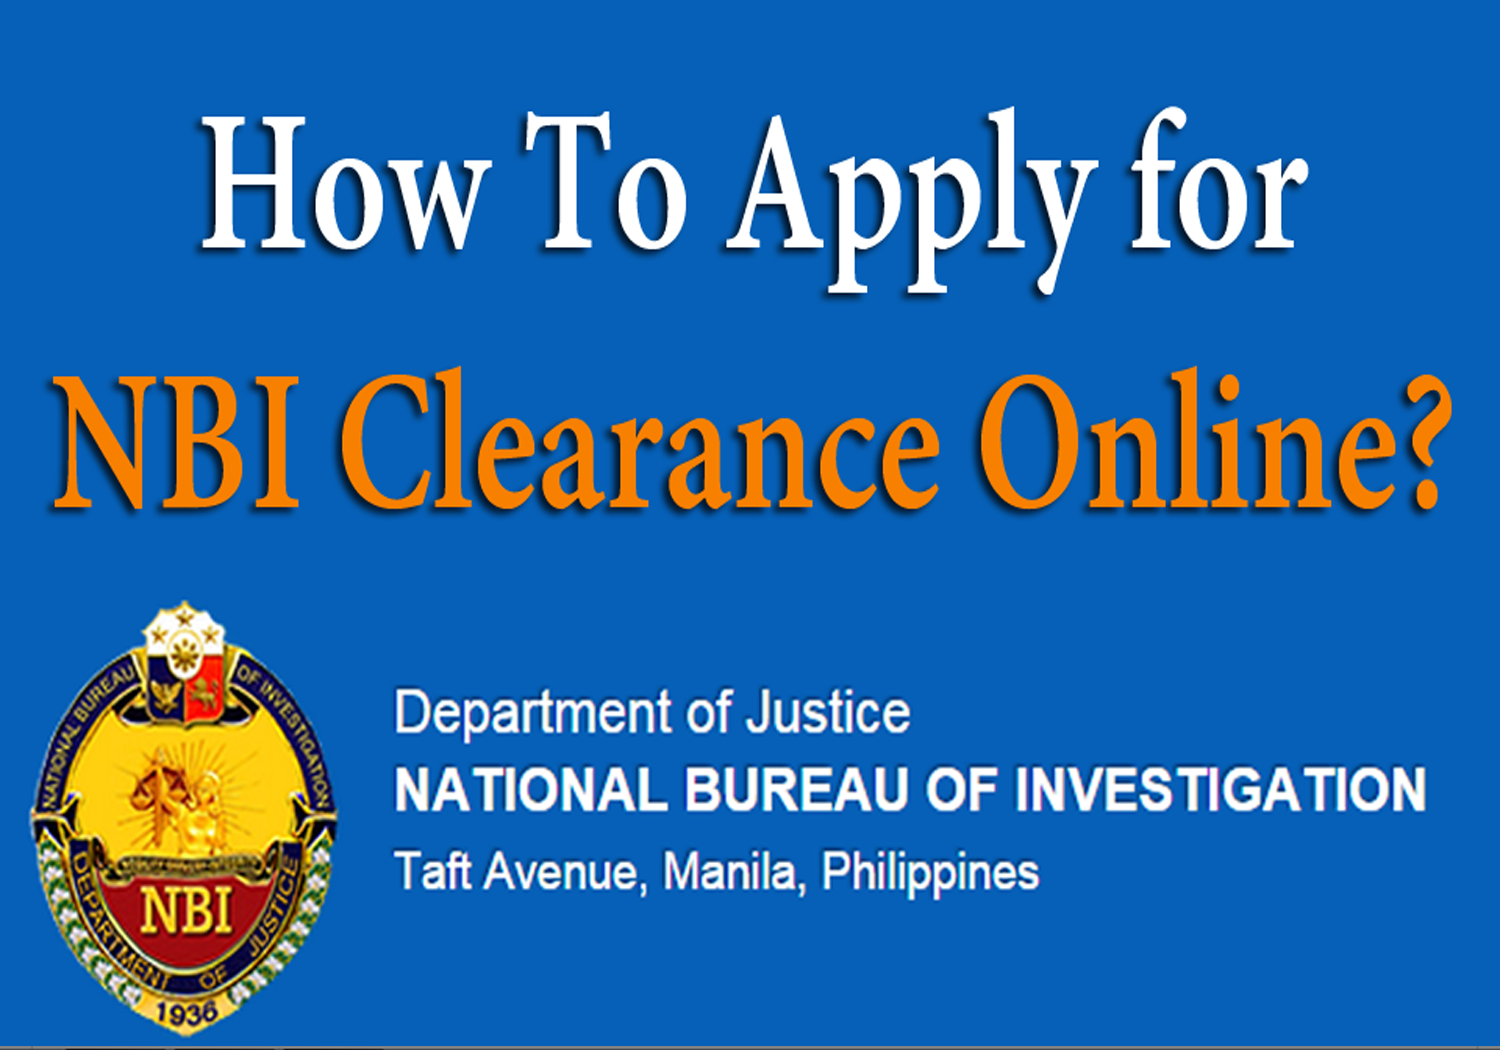 NBI Clearance Online: How to Apply? | Specof.com